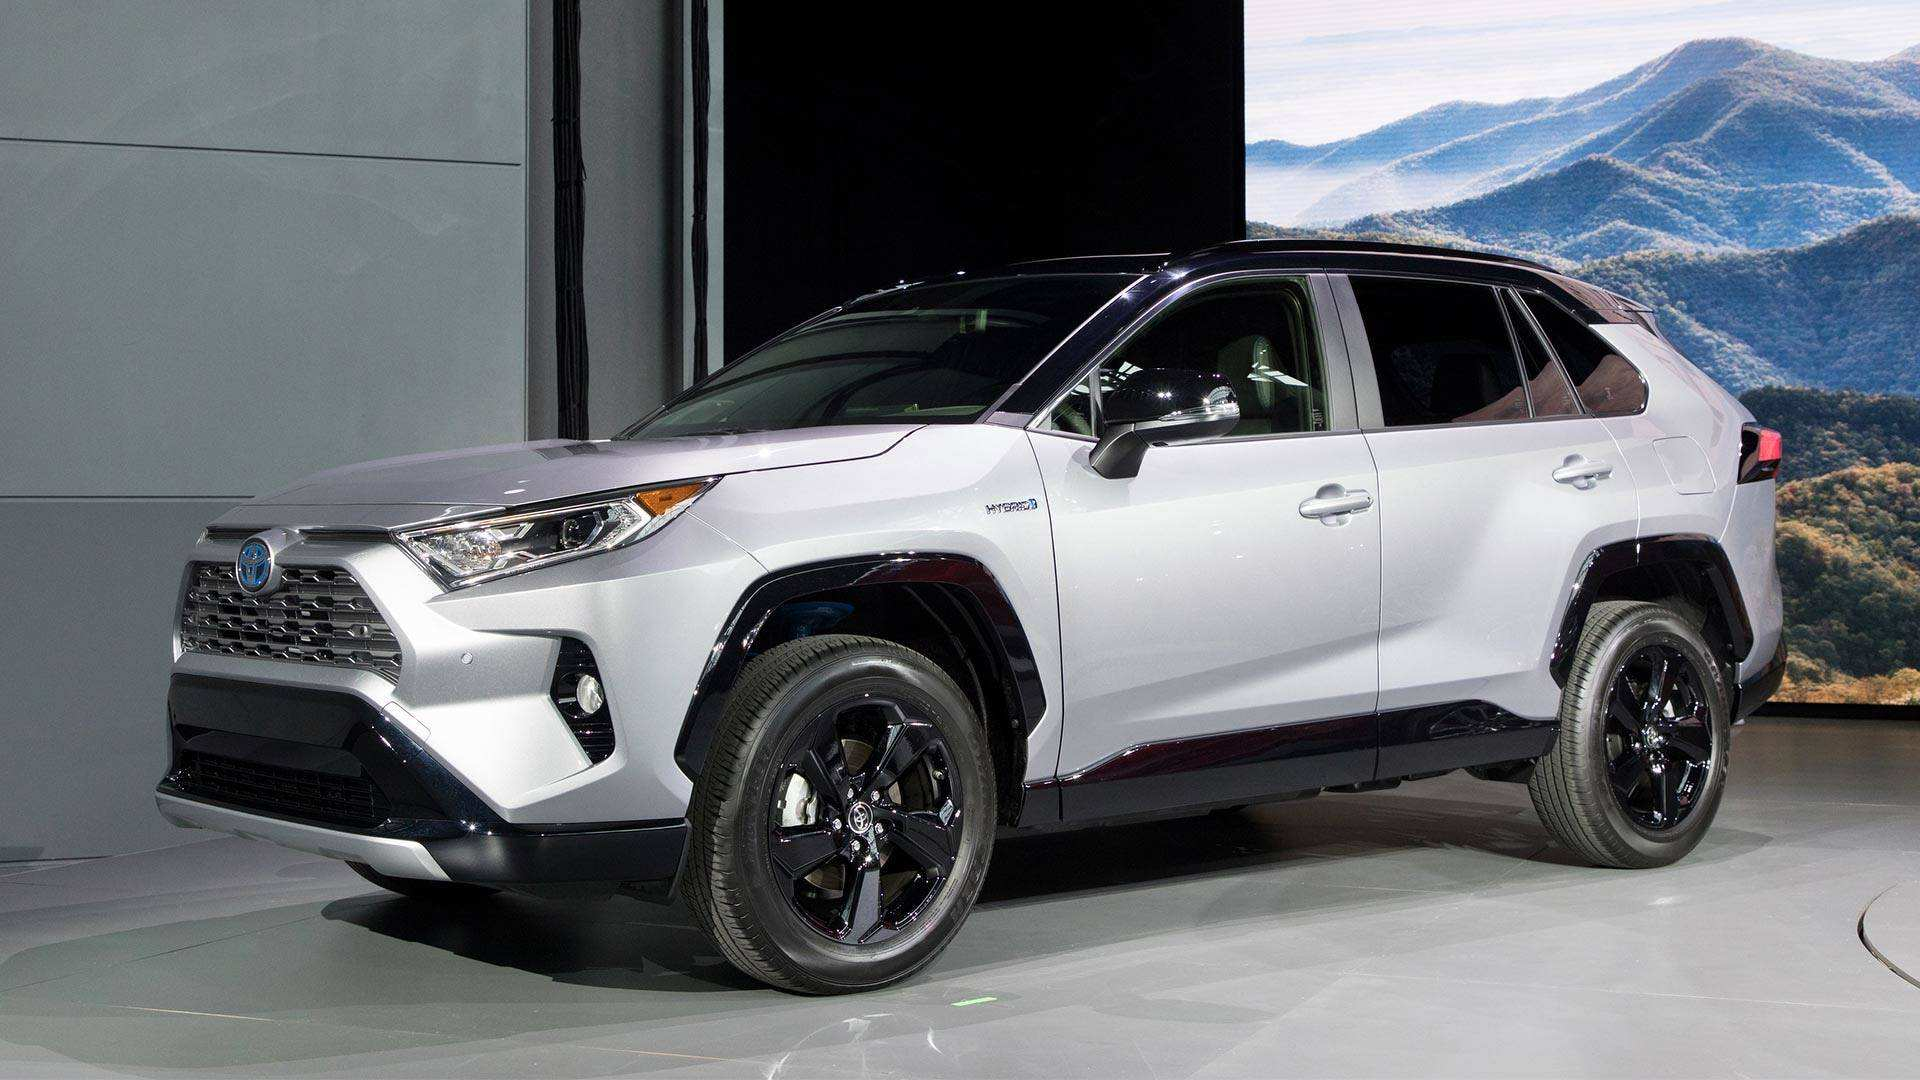 36 All New Toyota Models 2019 Specs with Toyota Models 2019